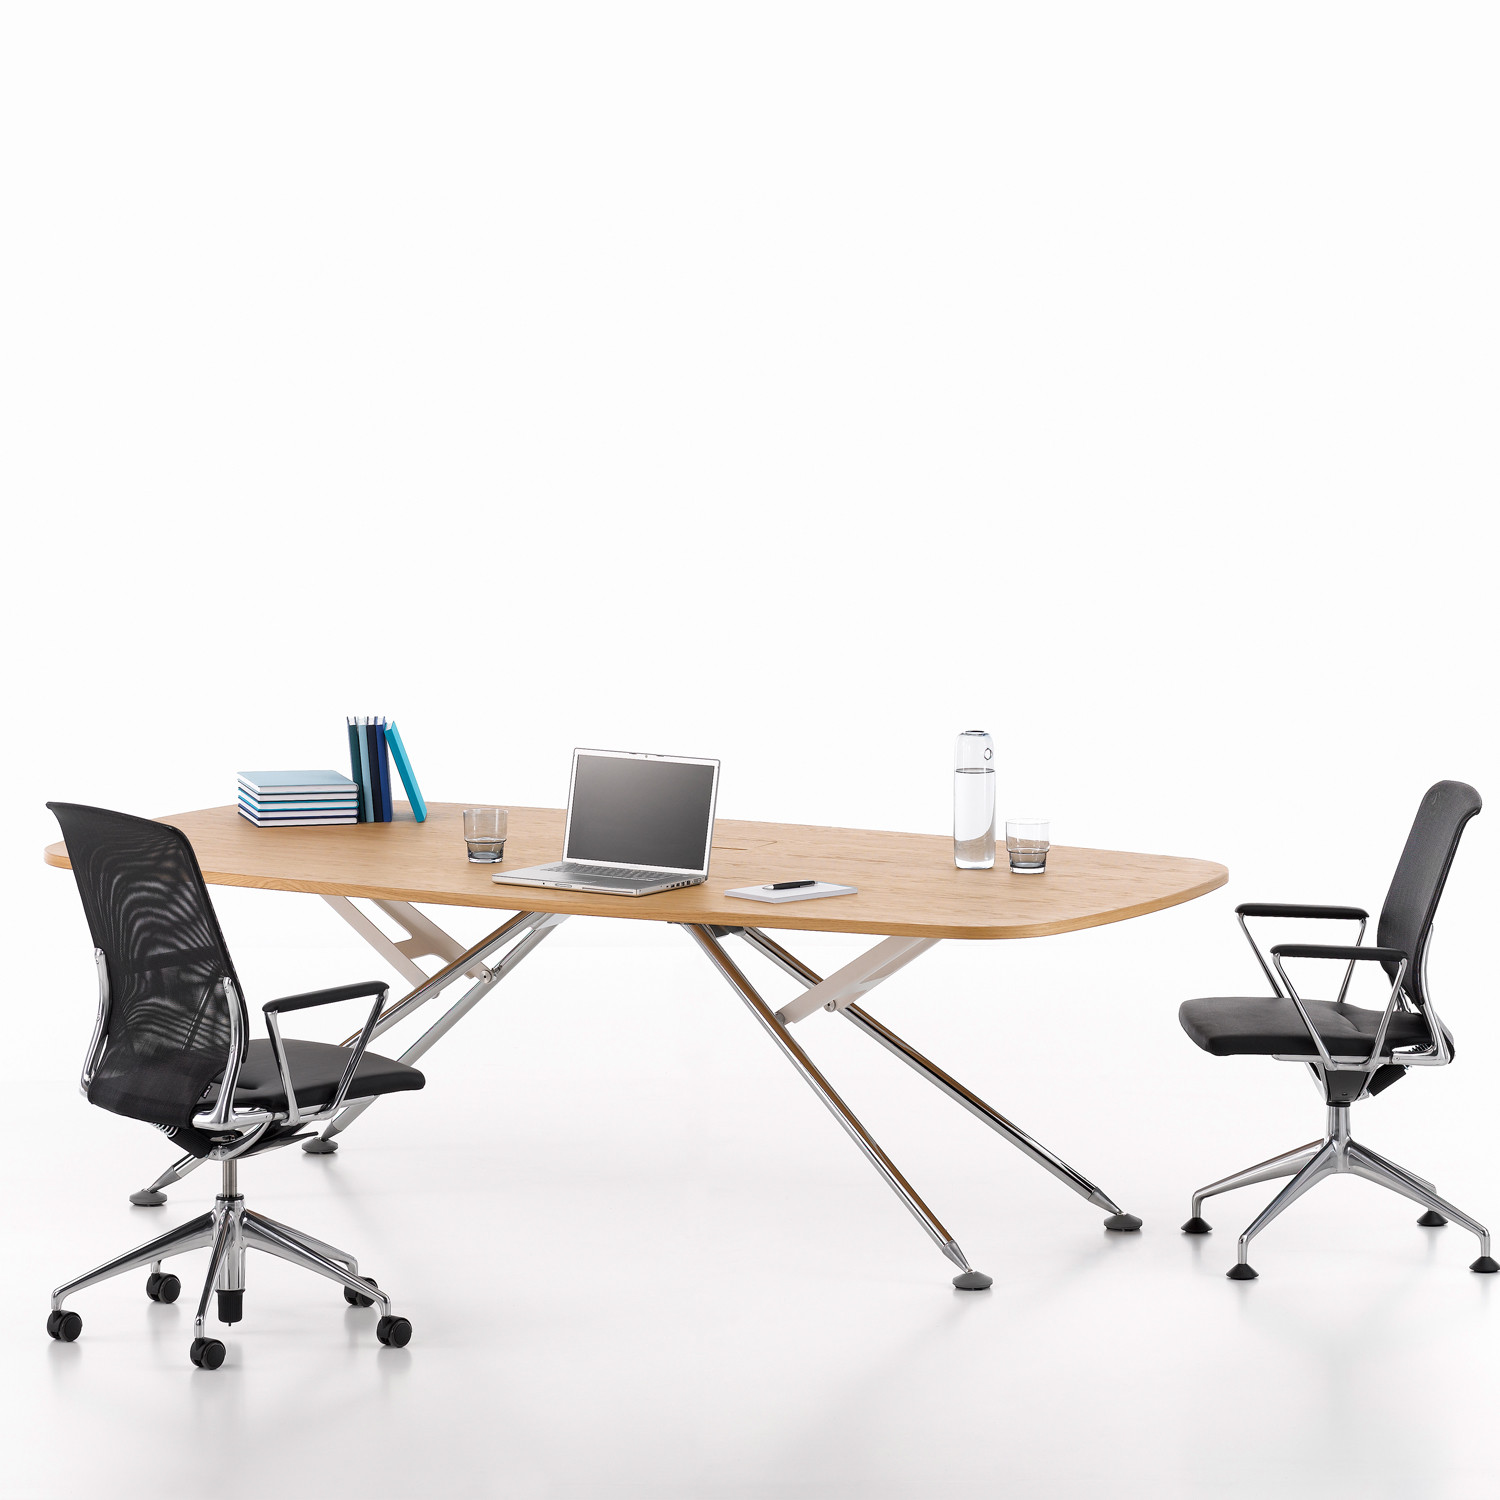 ArchiMeda Adjustable Desks